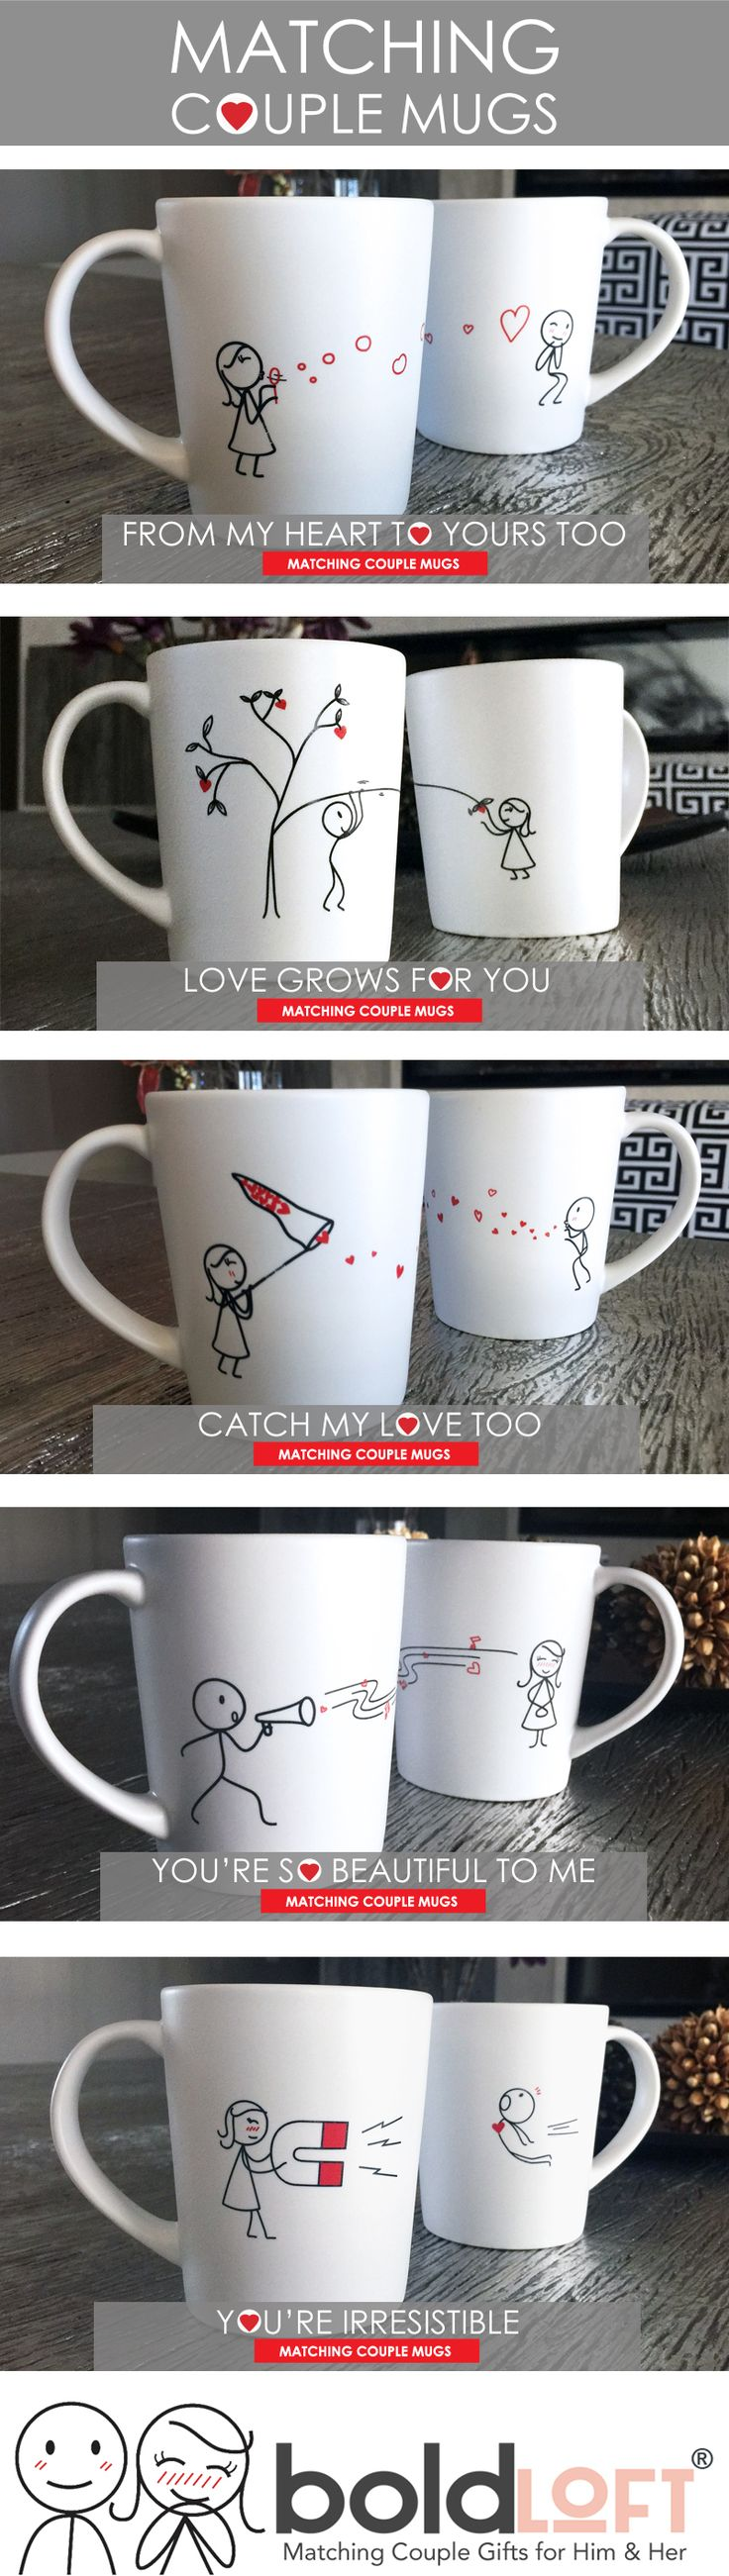 Matching Couple Mugs from BoldLoft. Boldloft's love-filled his and hers couple coffee mug set will go to work for you as your loved one's daily reminder that your heart is overflowing with love just for them! #matchingcouplemugs